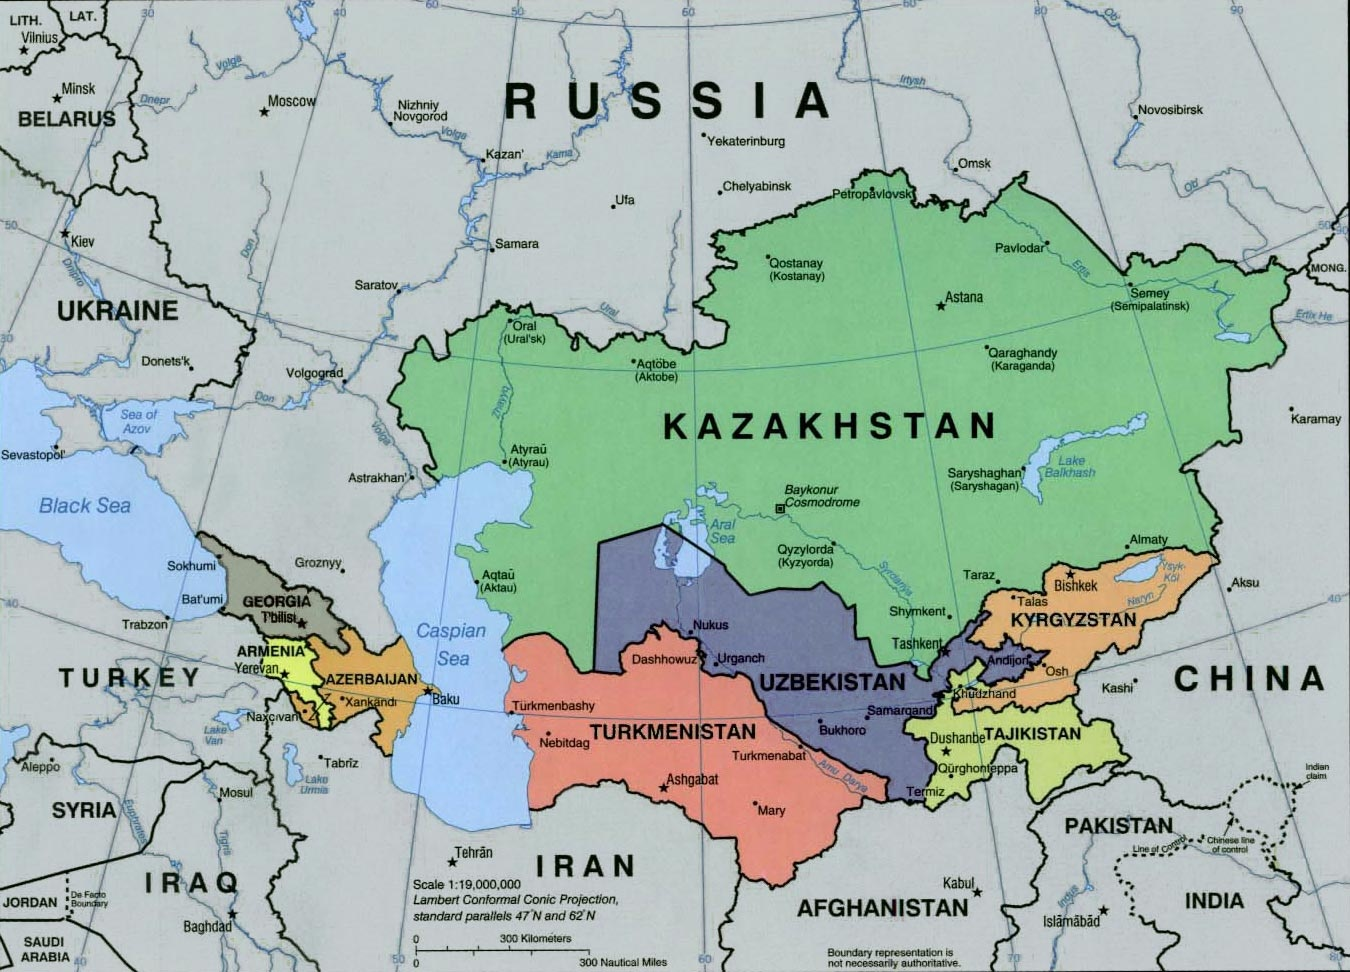 Map Of Caspian Sea Region Life After All : Another Sea, Another Region of Conflict: The Caspian